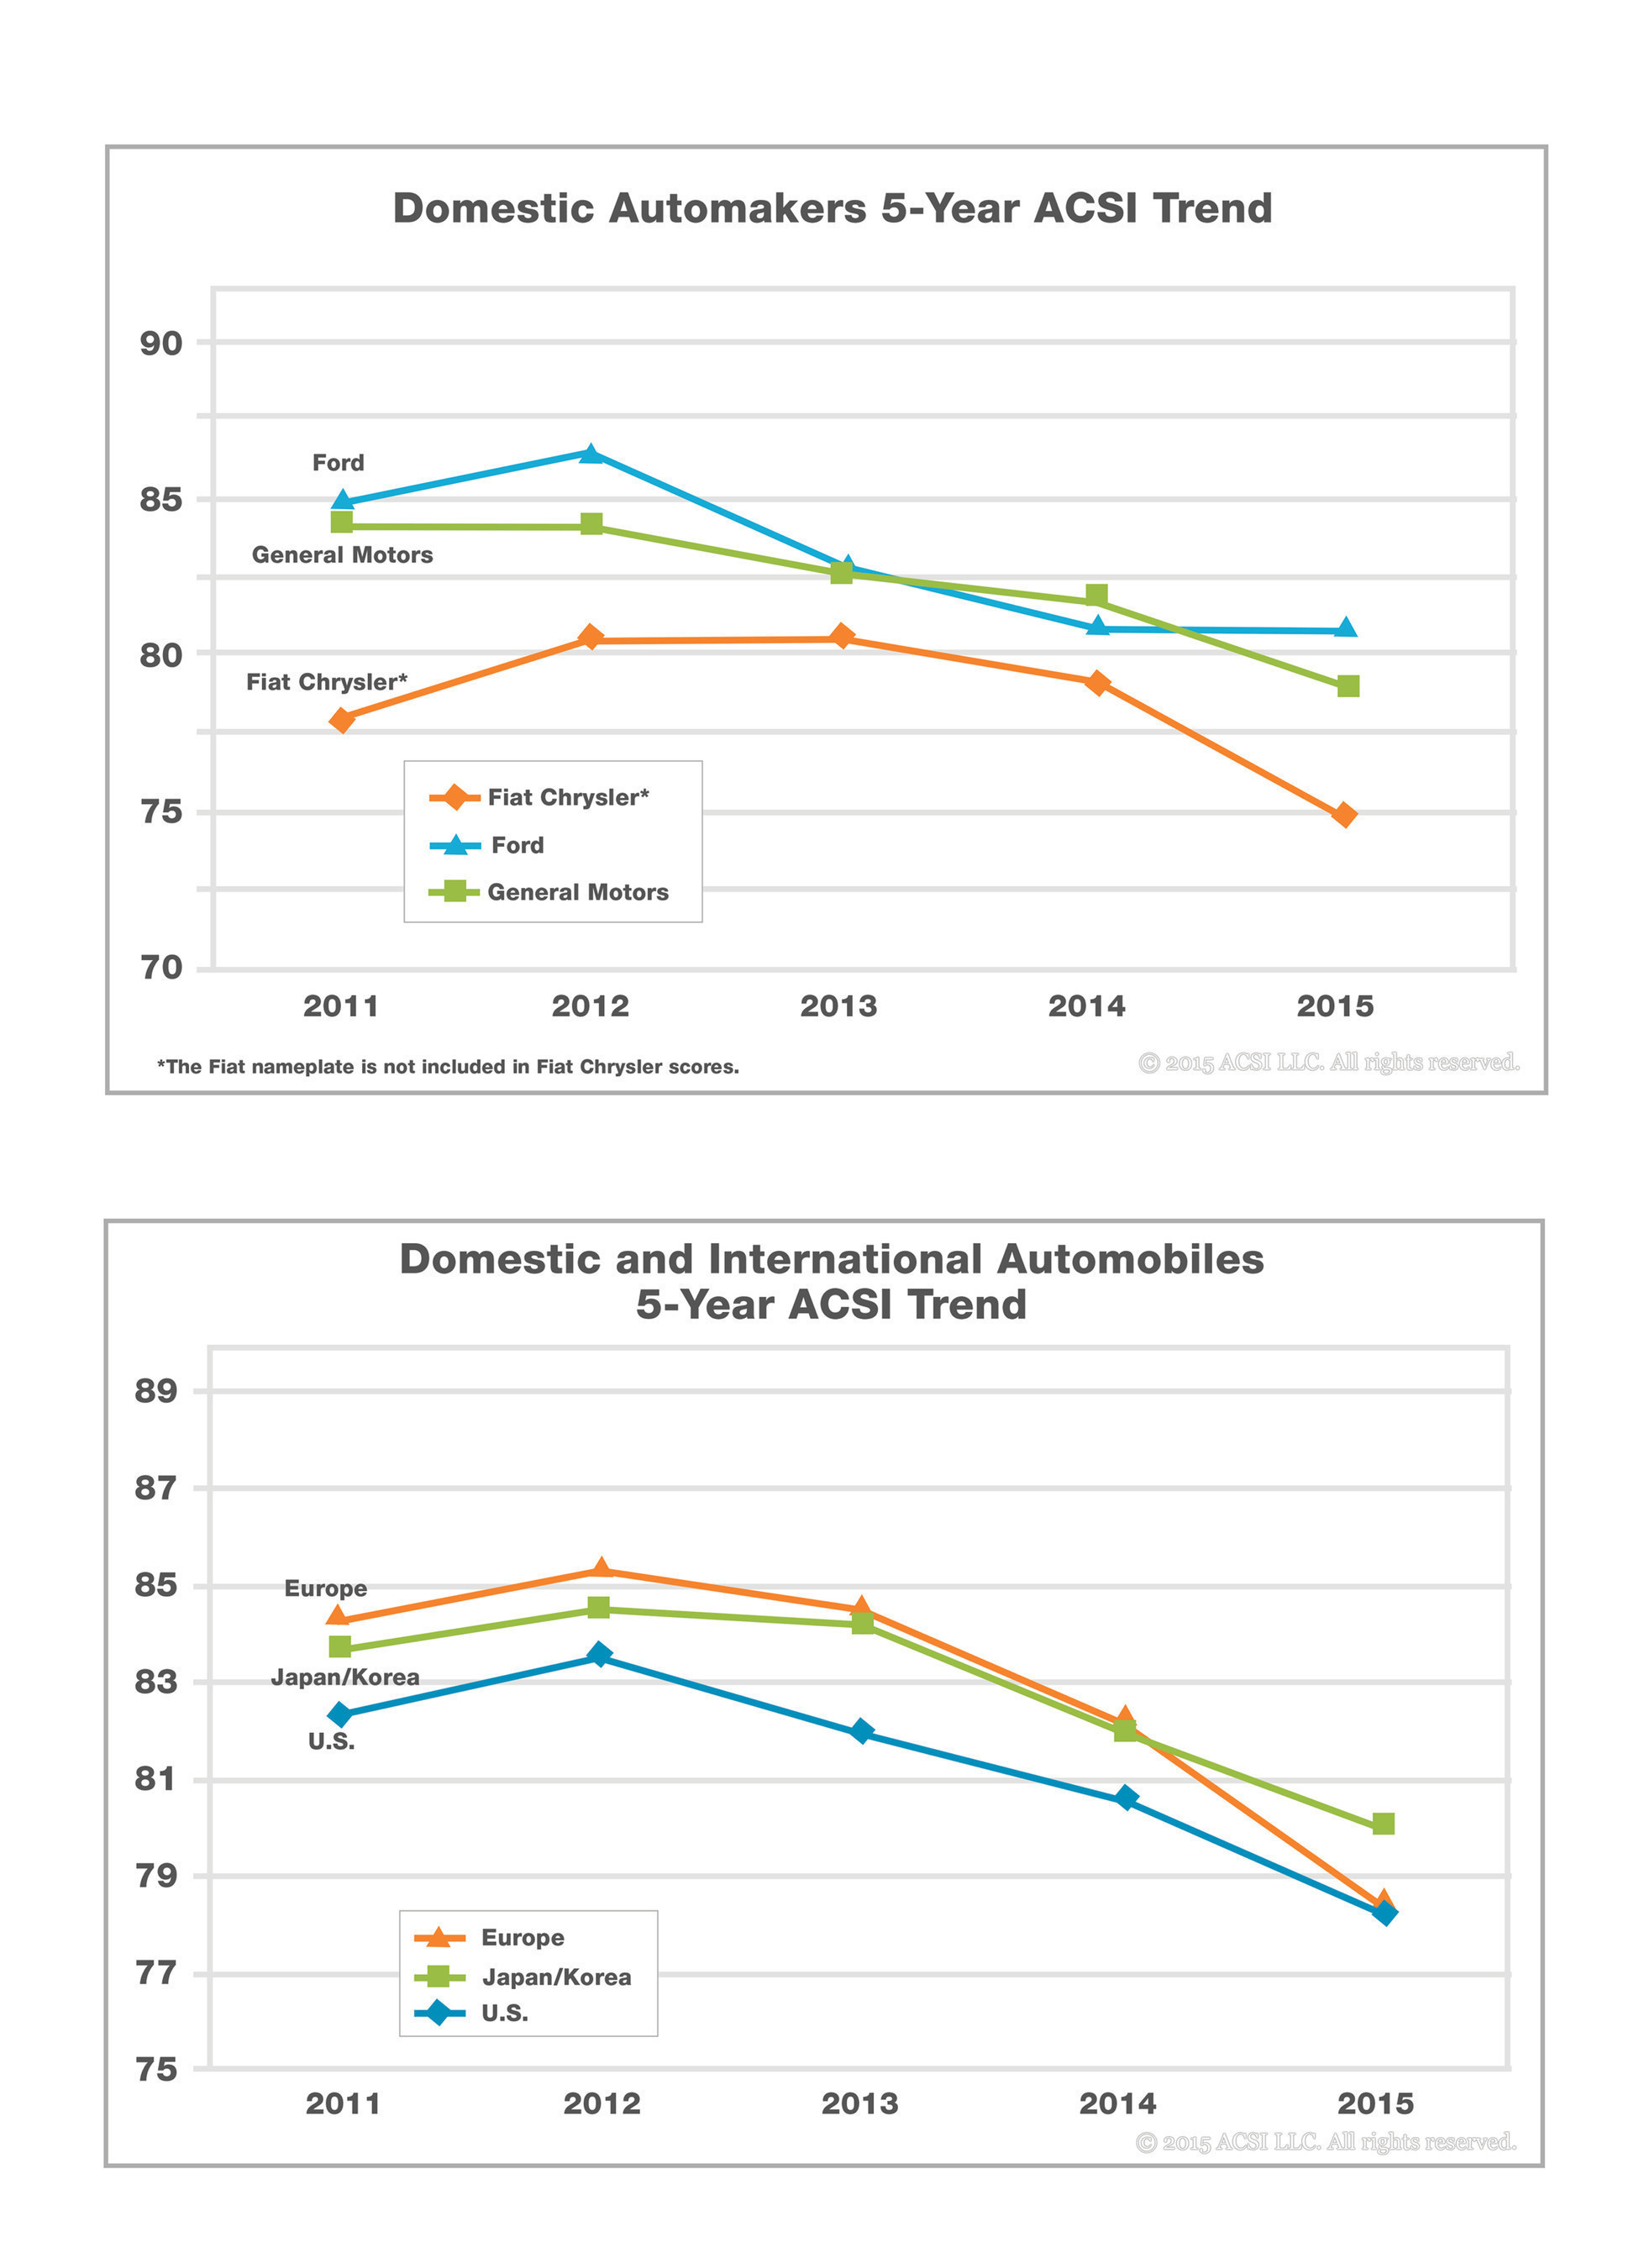 ACSI Auto Industry 5-year Trends